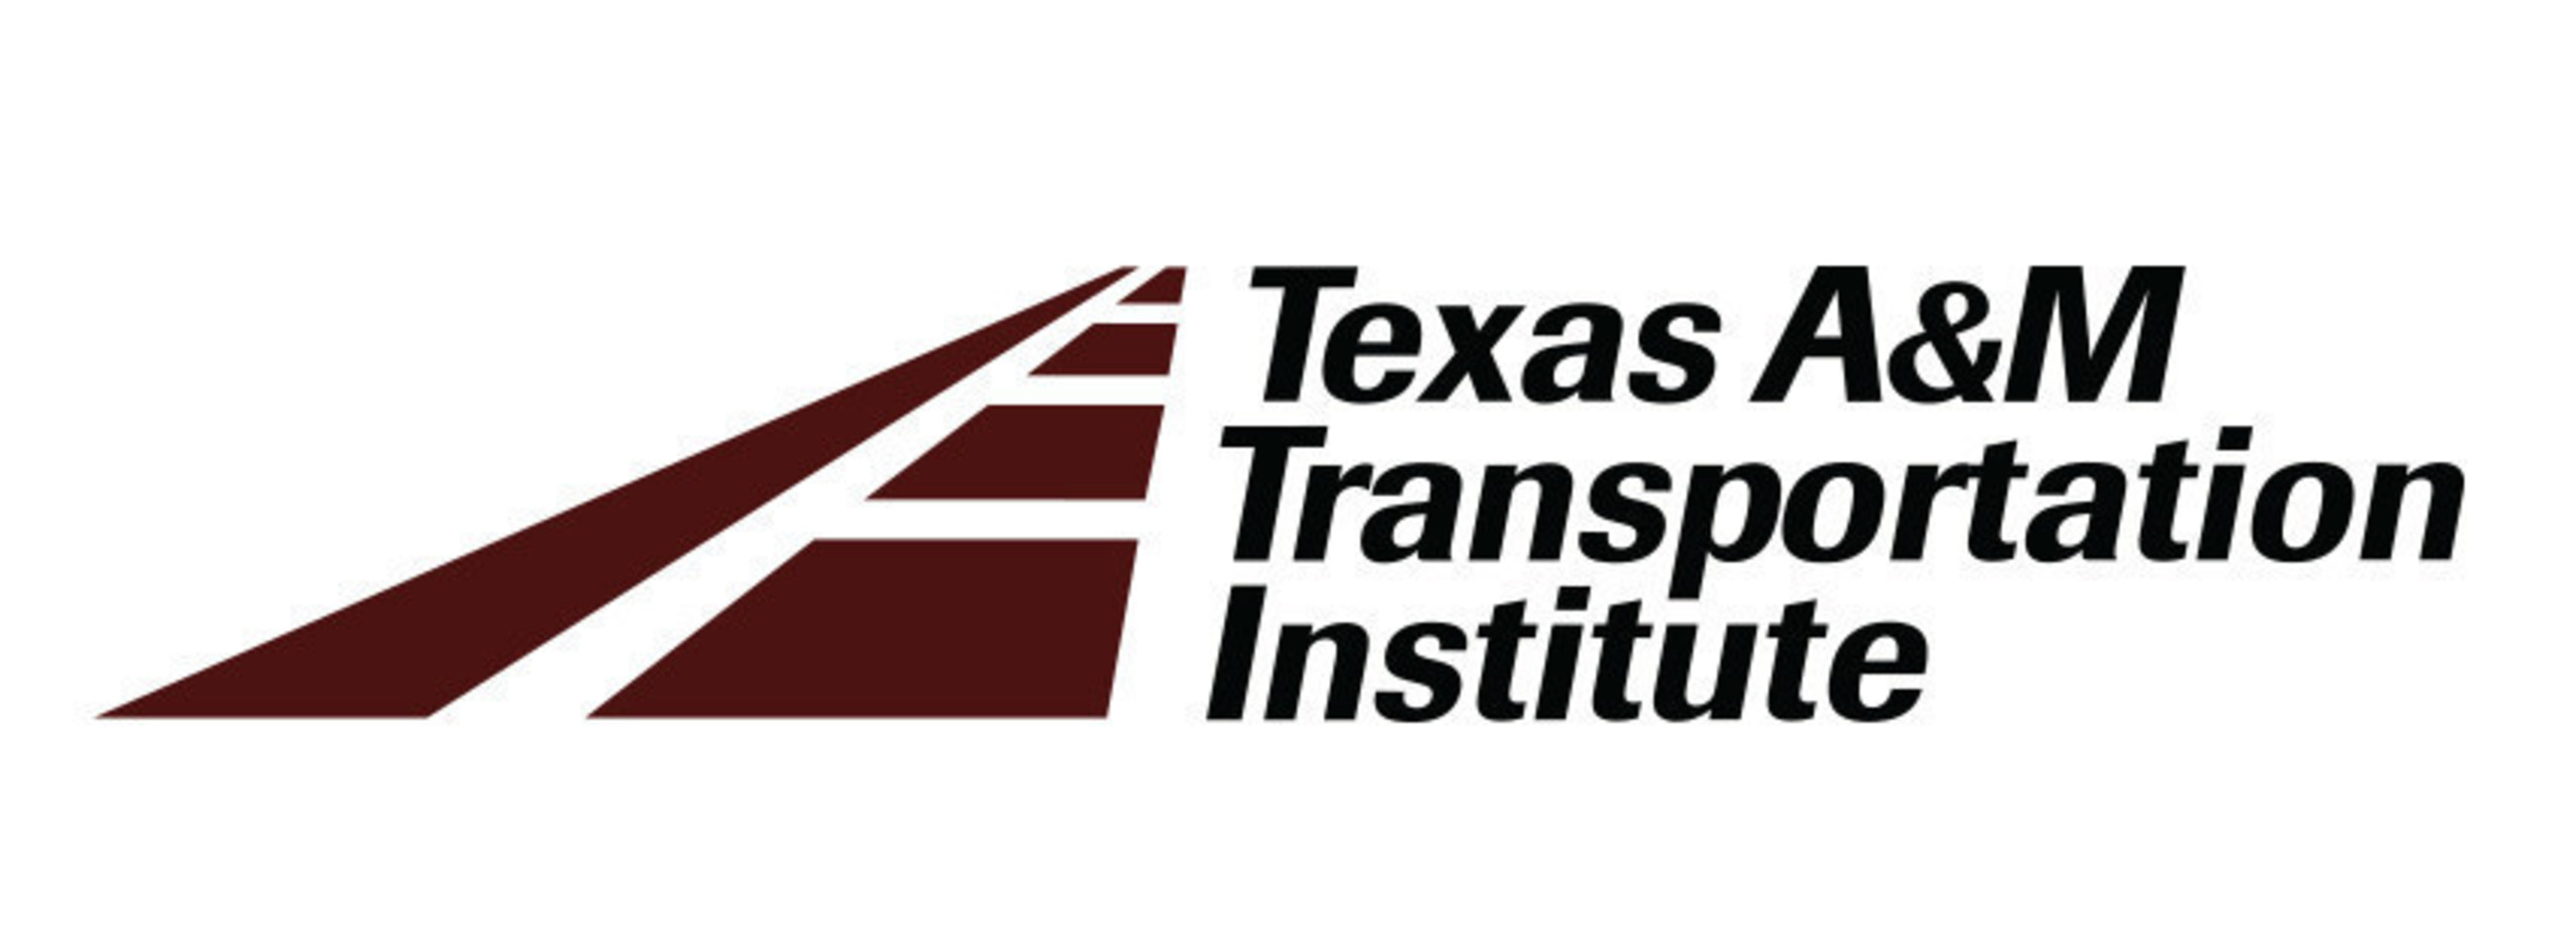 Texas A&M Transportation Institute is a member of the Texas A&M System. For more information on our world class research visit http://tti.tamu.edu.